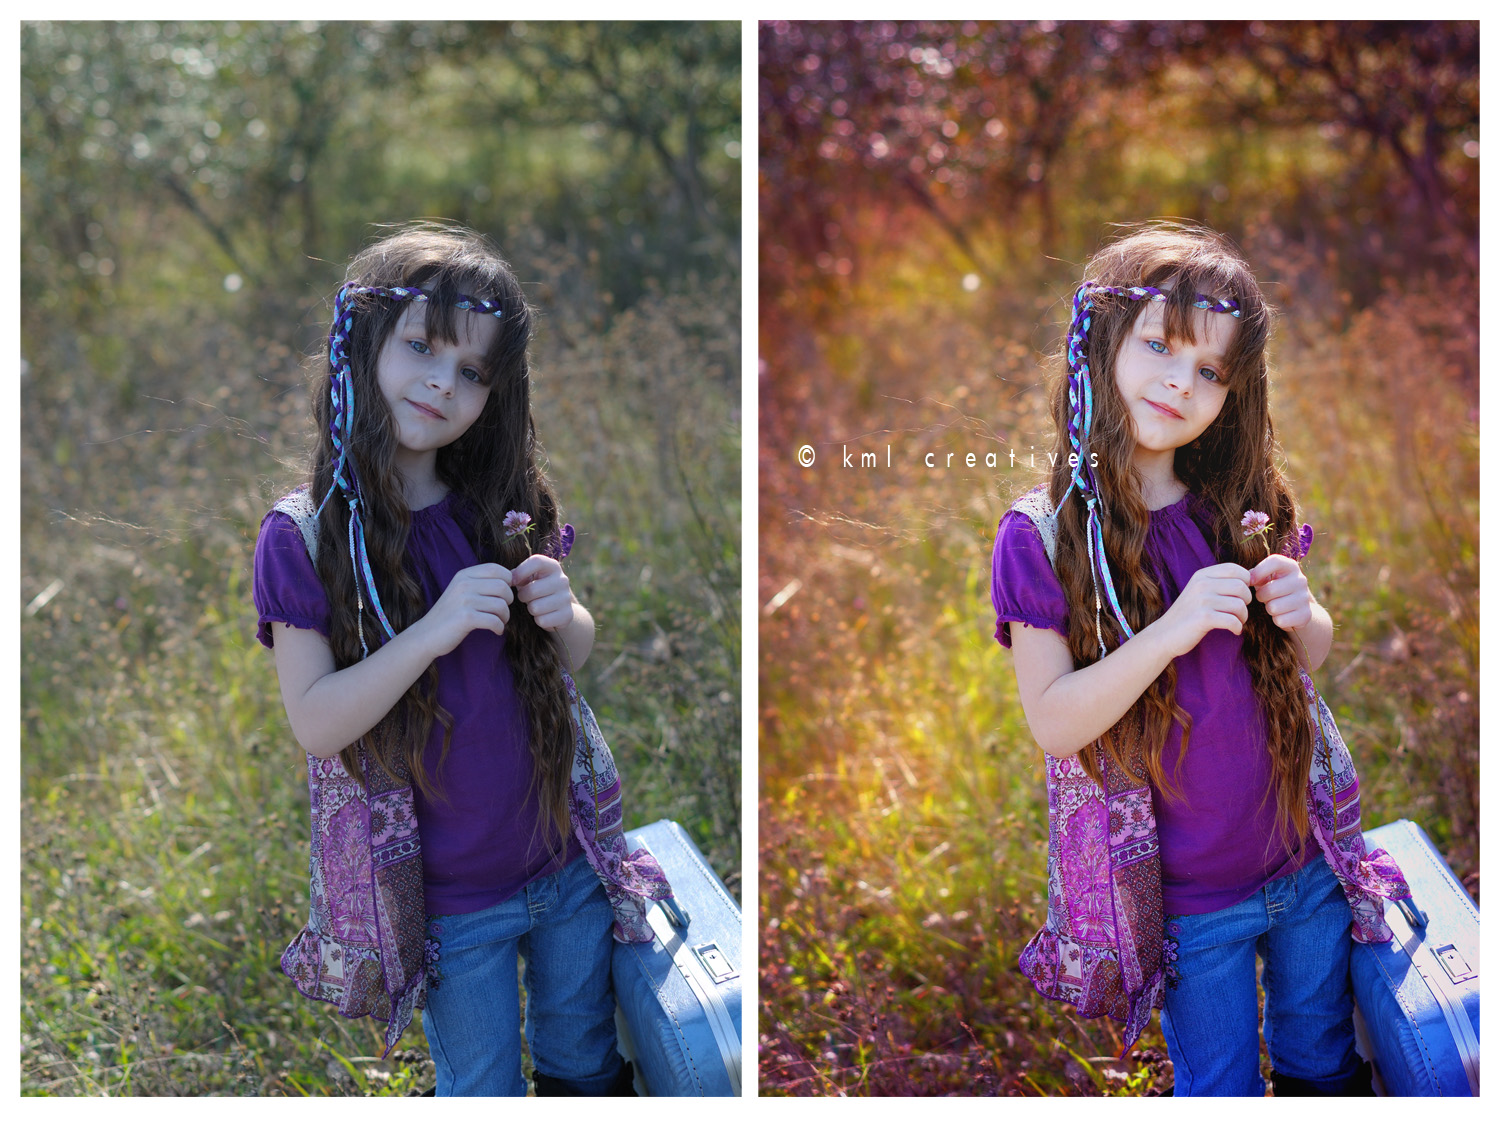 the importance of editing photos